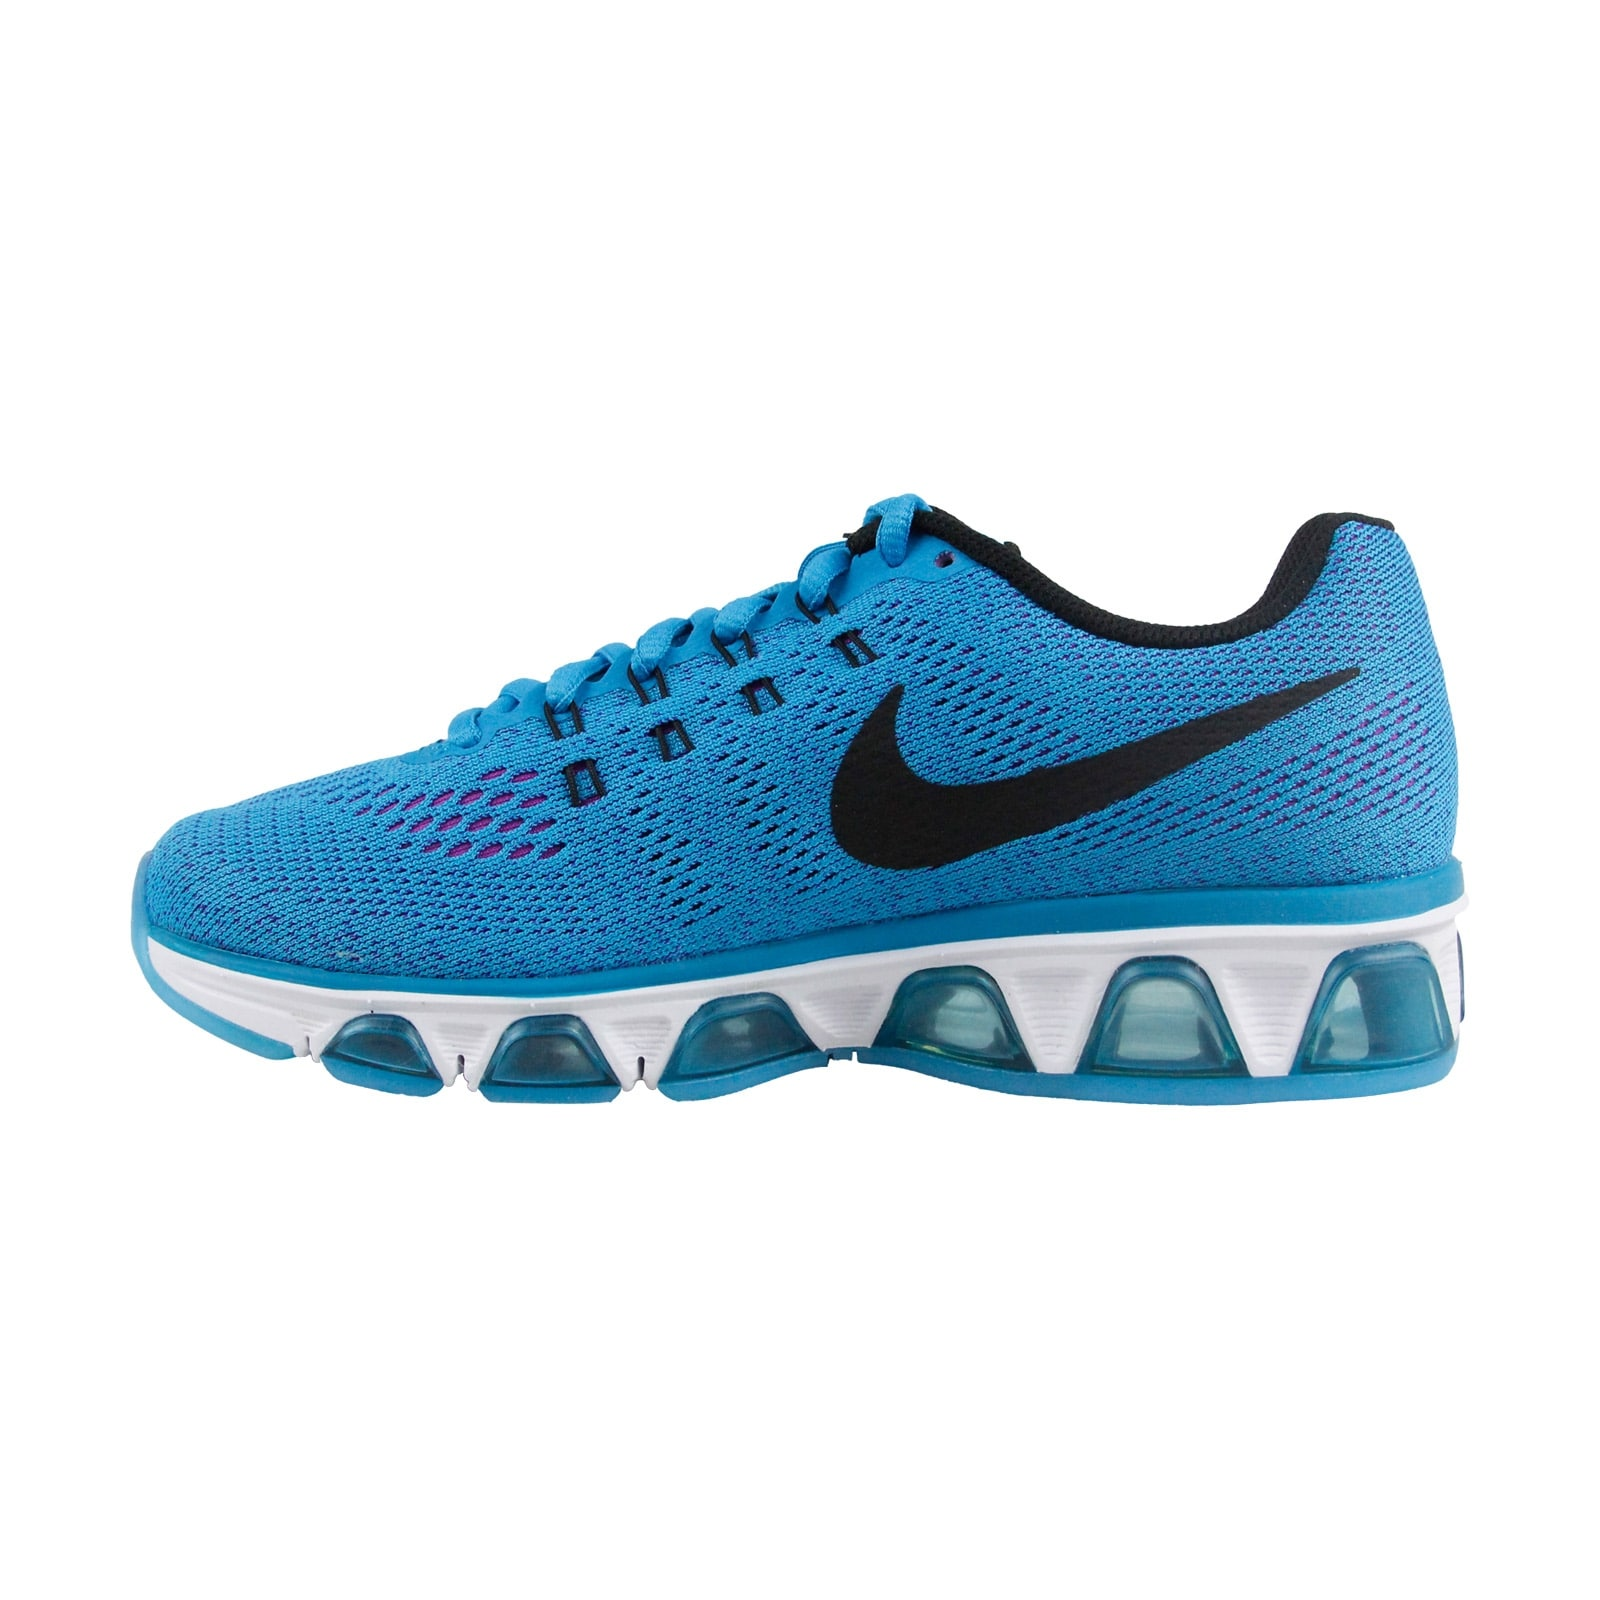 6153f36334 Shop Nike Air Max Tailwind 8 Womens Blue Mesh Athletic Lace Up Running Shoes  - Free Shipping Today - Overstock - 19571119